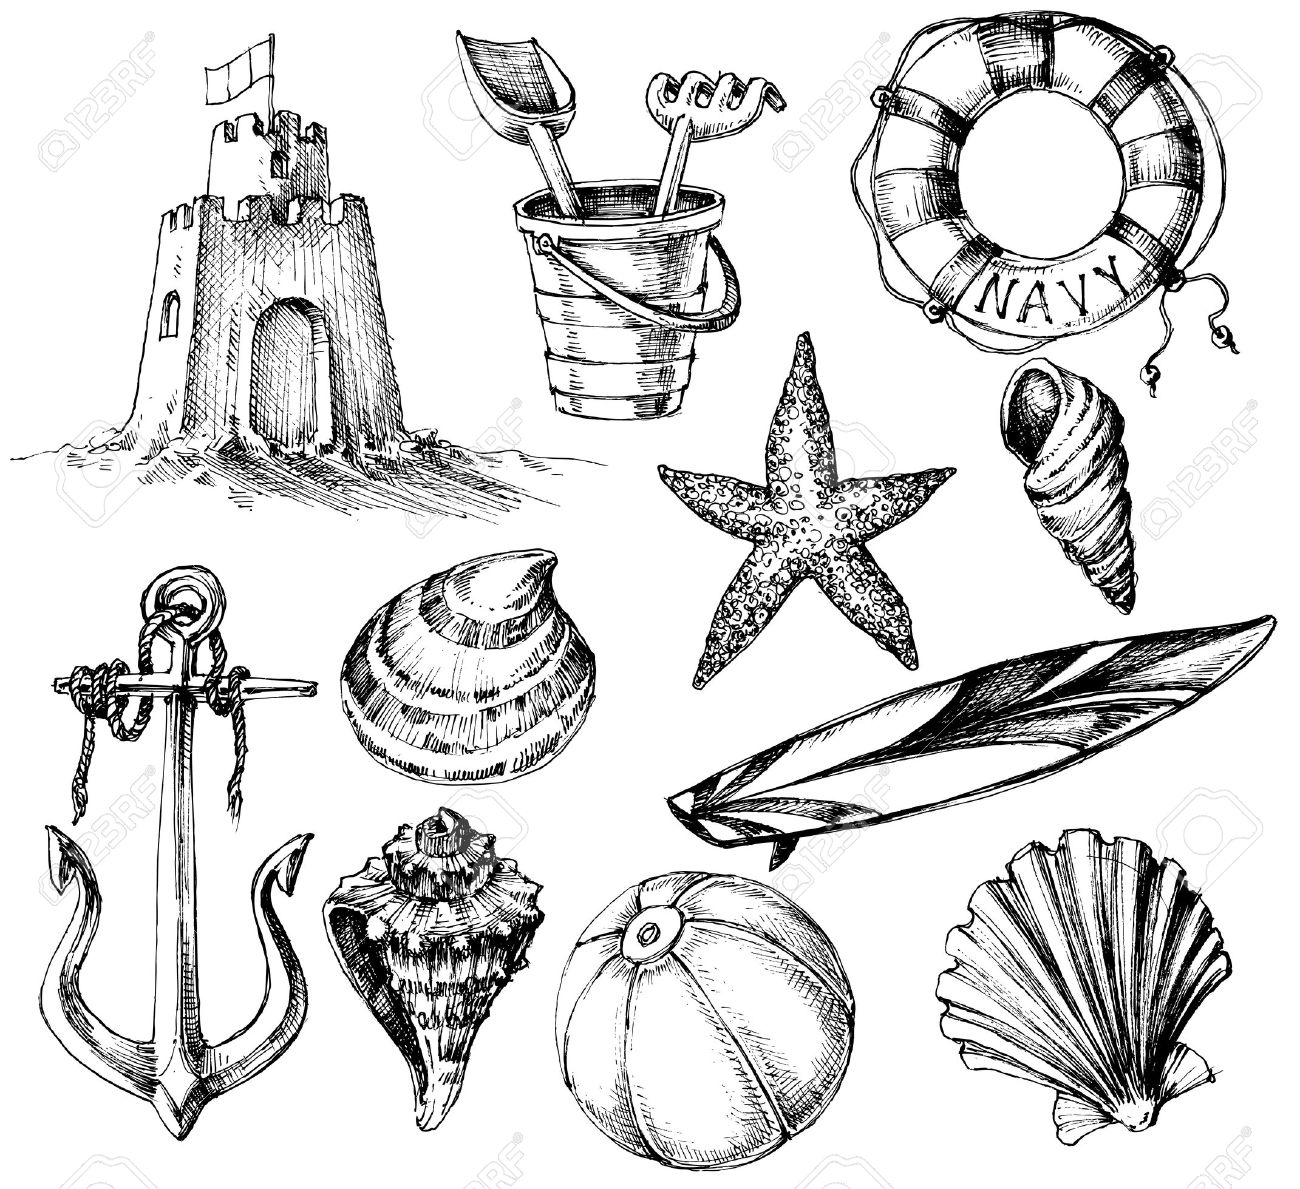 Uncategorized Drawings Of Summer summer collection marine life and beach toys drawings royalty stock vector 43124895